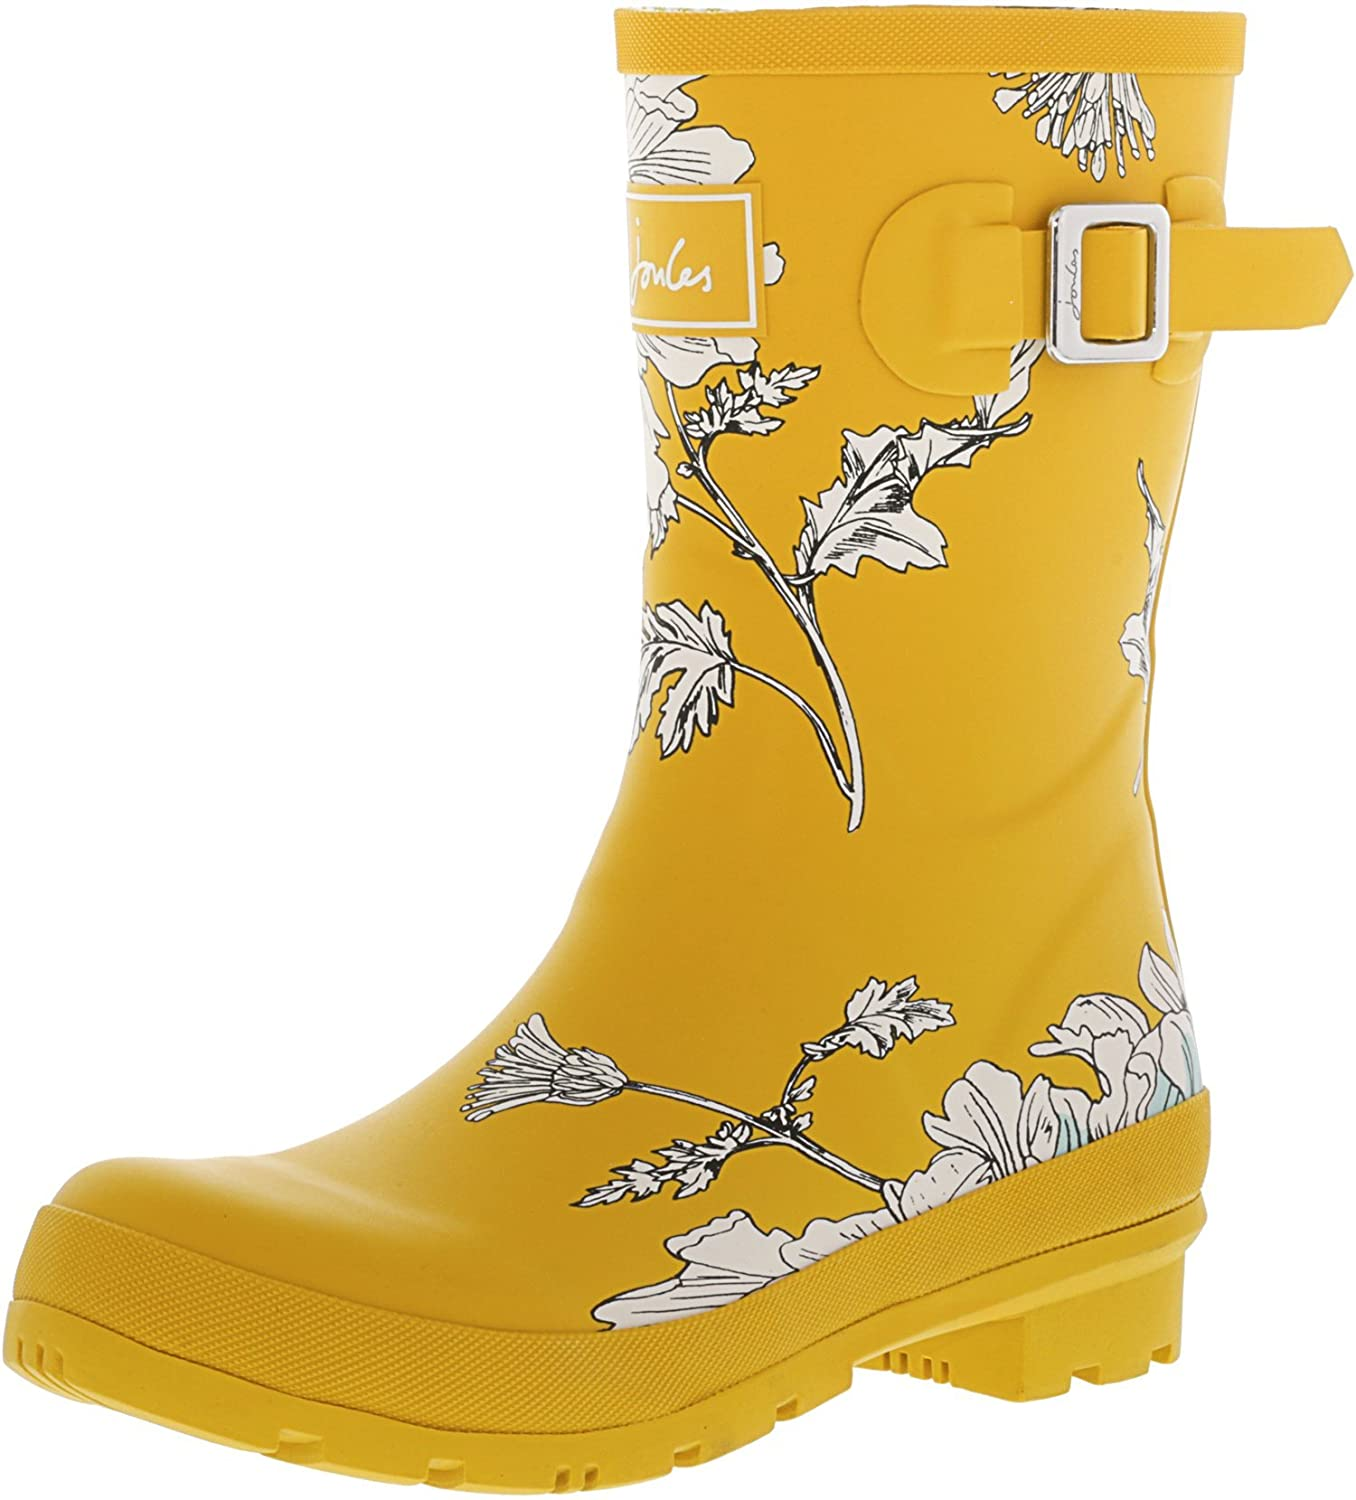 Joules Women's Molly Welly Rain Boot B074Q3V58V 9 B(M) US|Antique Gold Flora